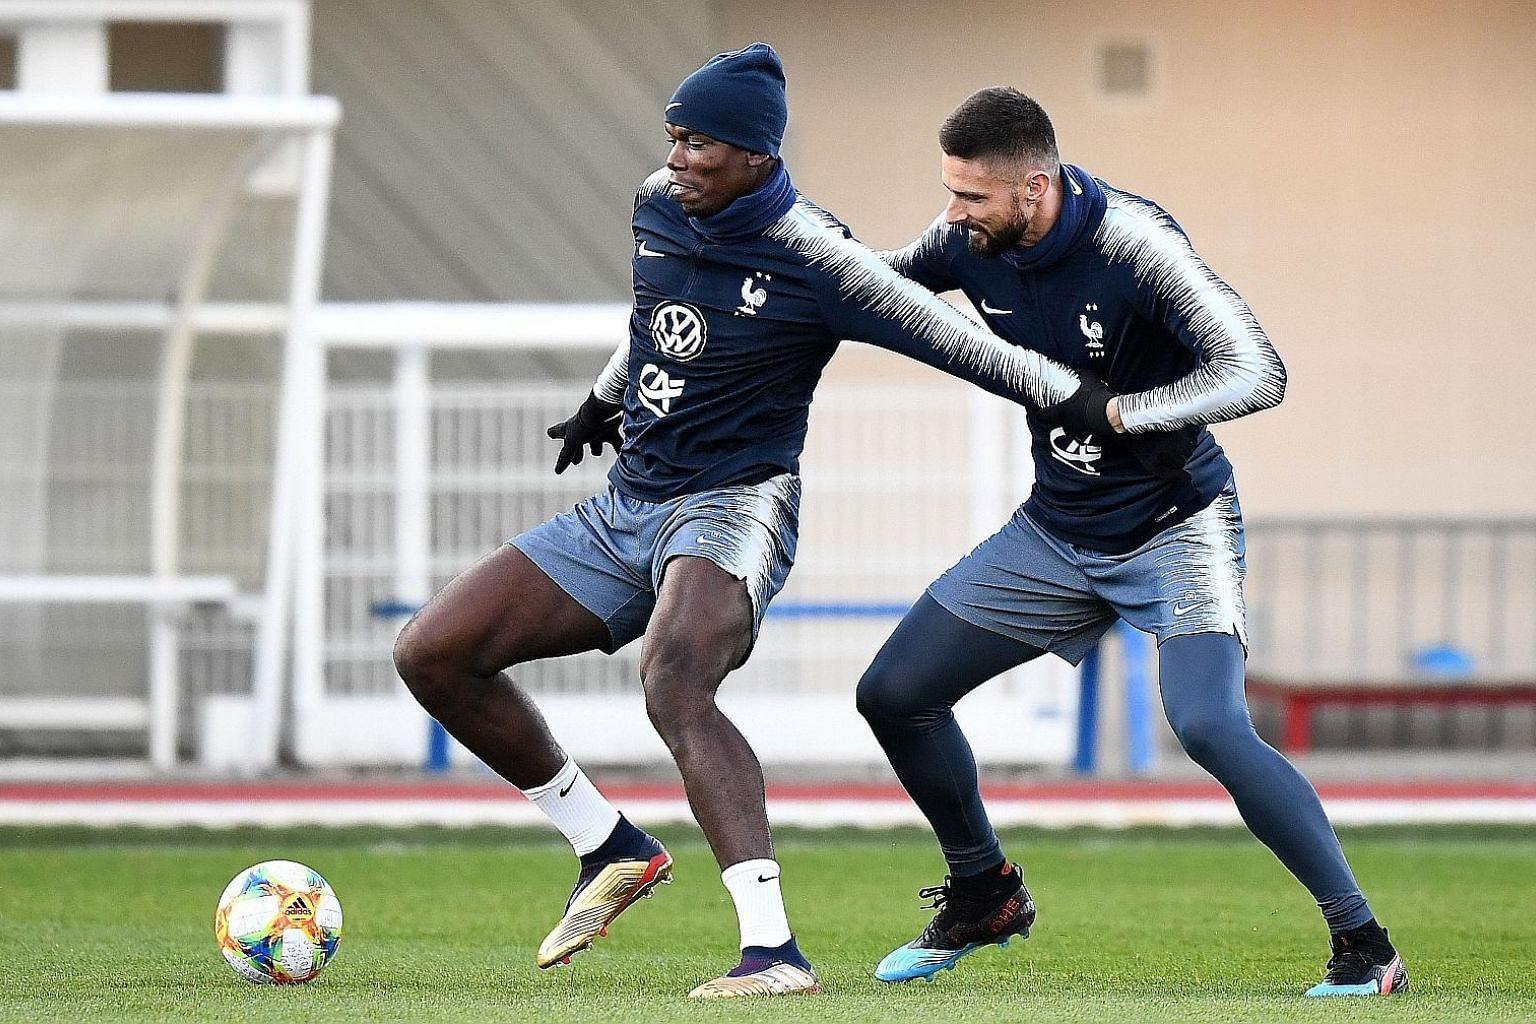 France midfielder Paul Pogba is closely marked by teammate Olivier Giroud during a training session on Tuesday as they prepare for their upcoming Euro 2020 qualifiers against Moldova and Iceland.